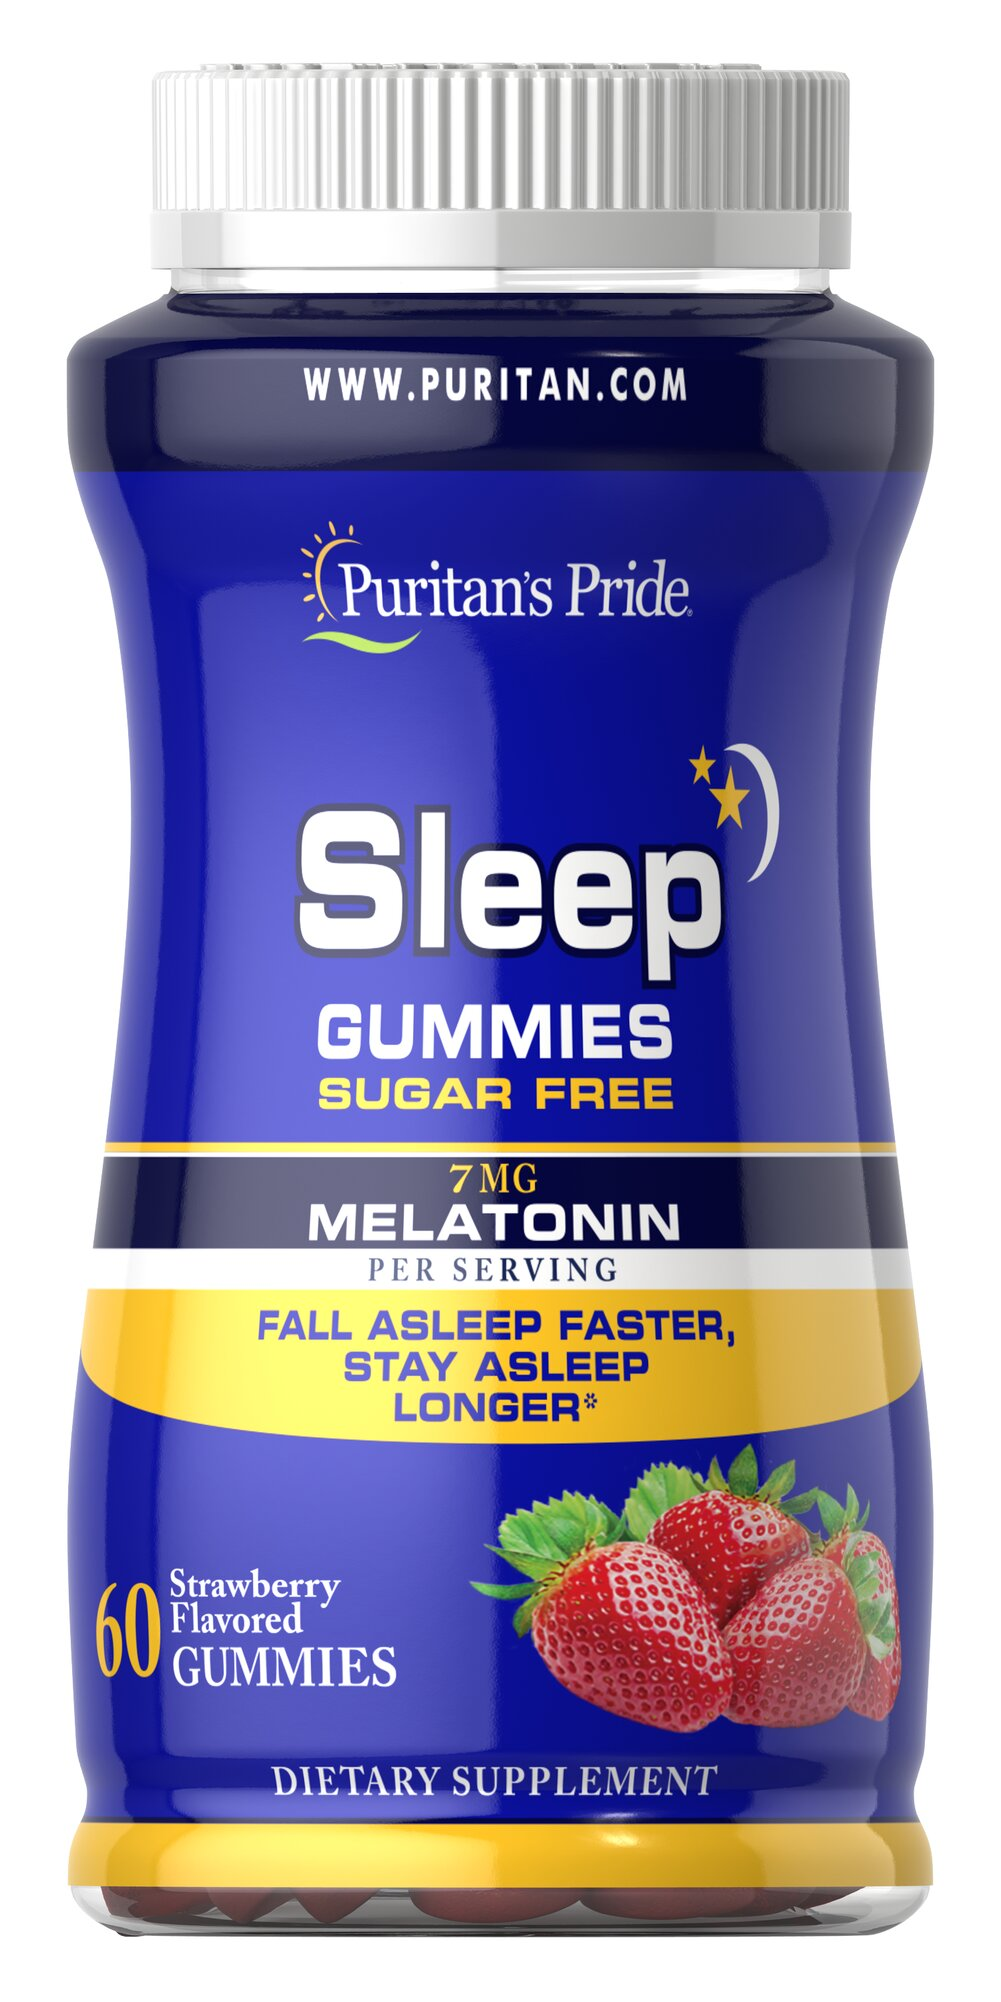 Sugar Free Sleep Gummies